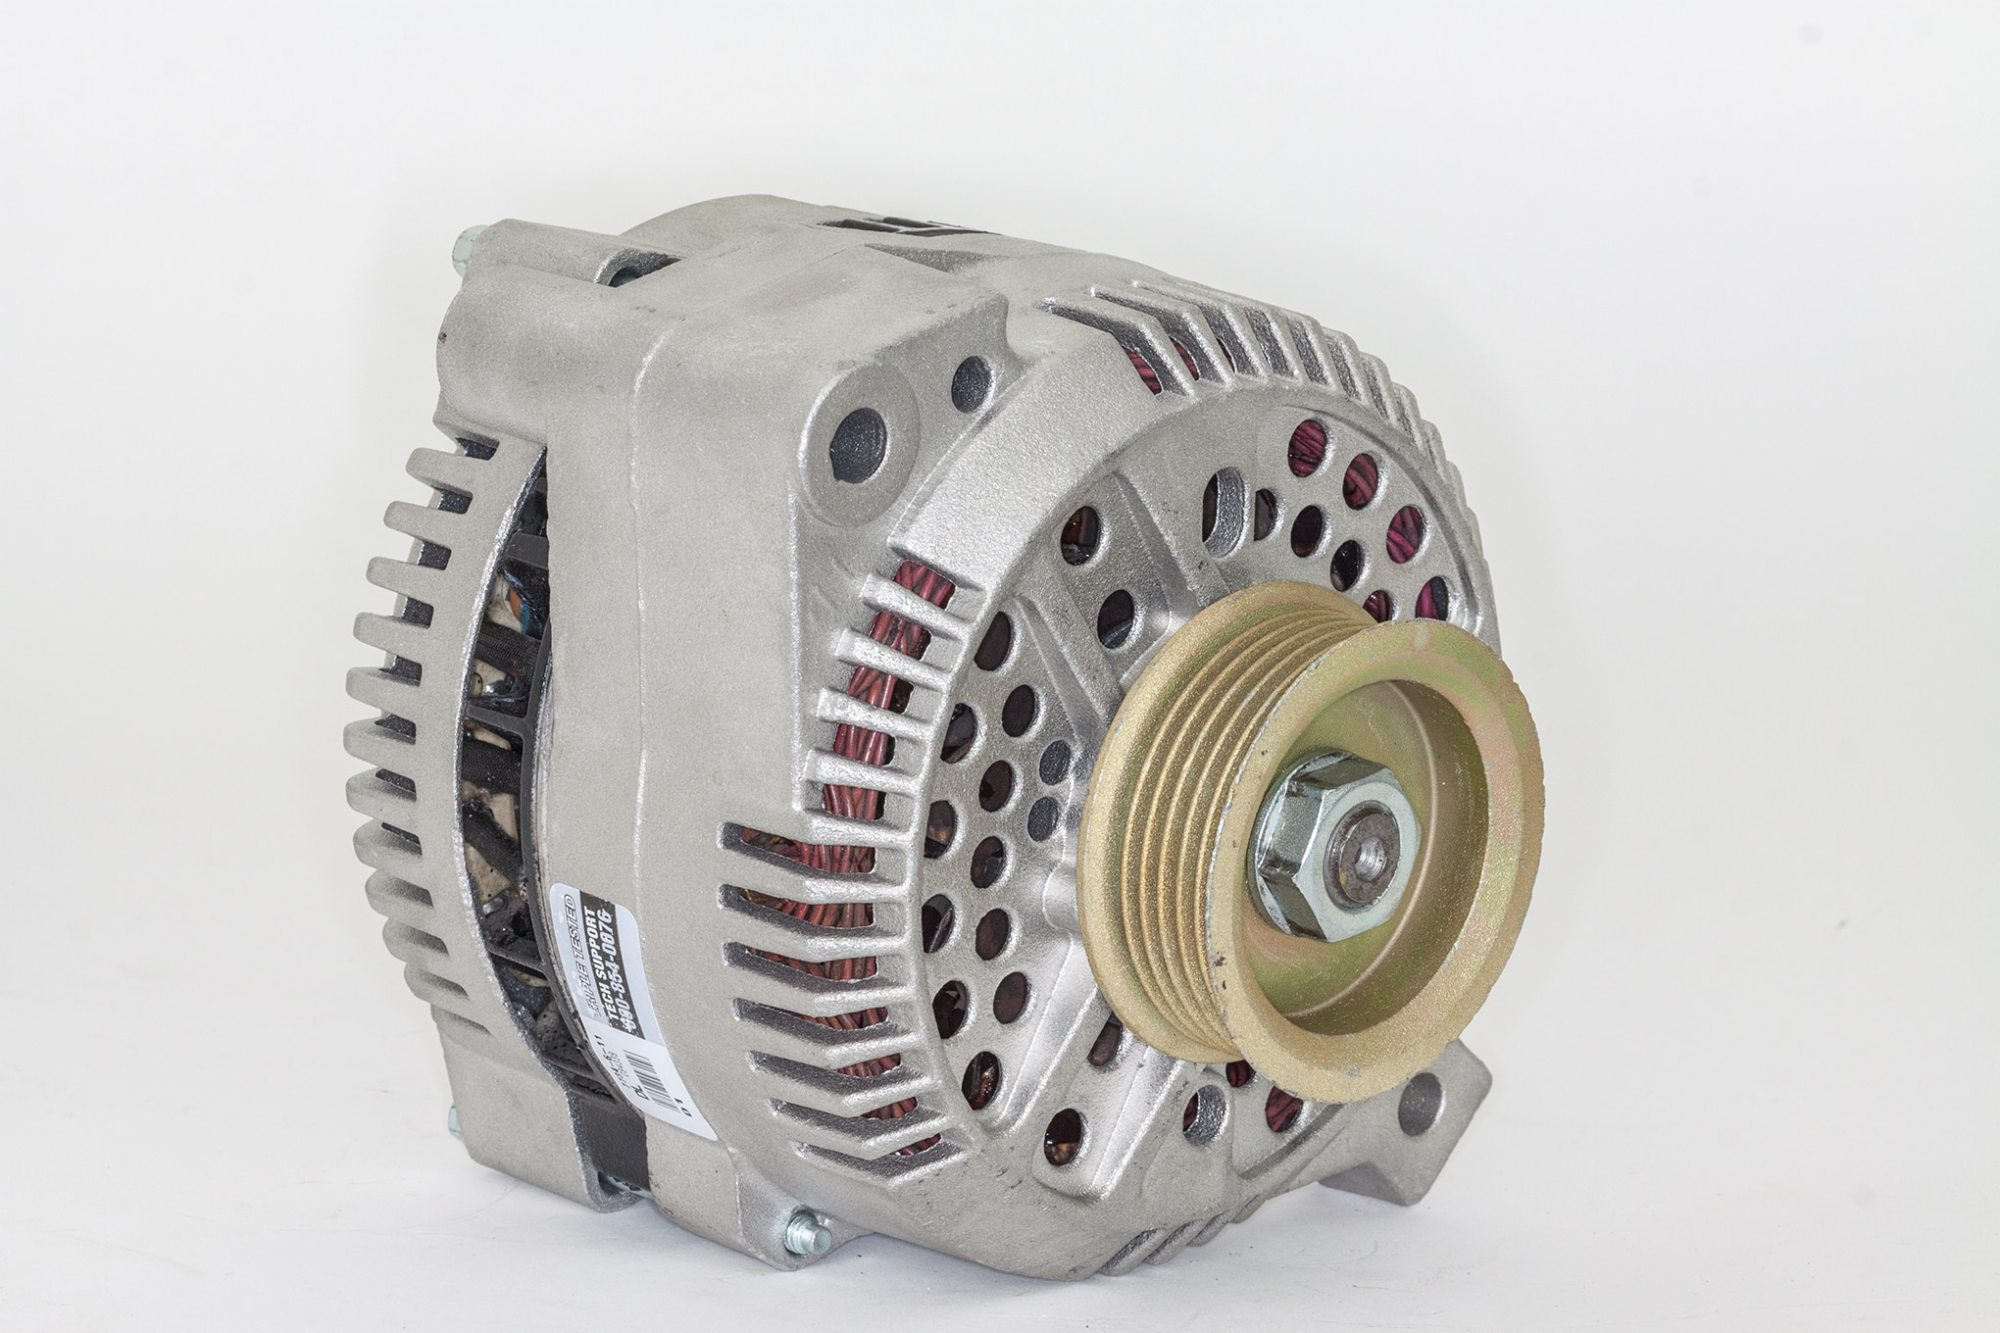 hight resolution of how to install a high output ford 3g alternator into older fords